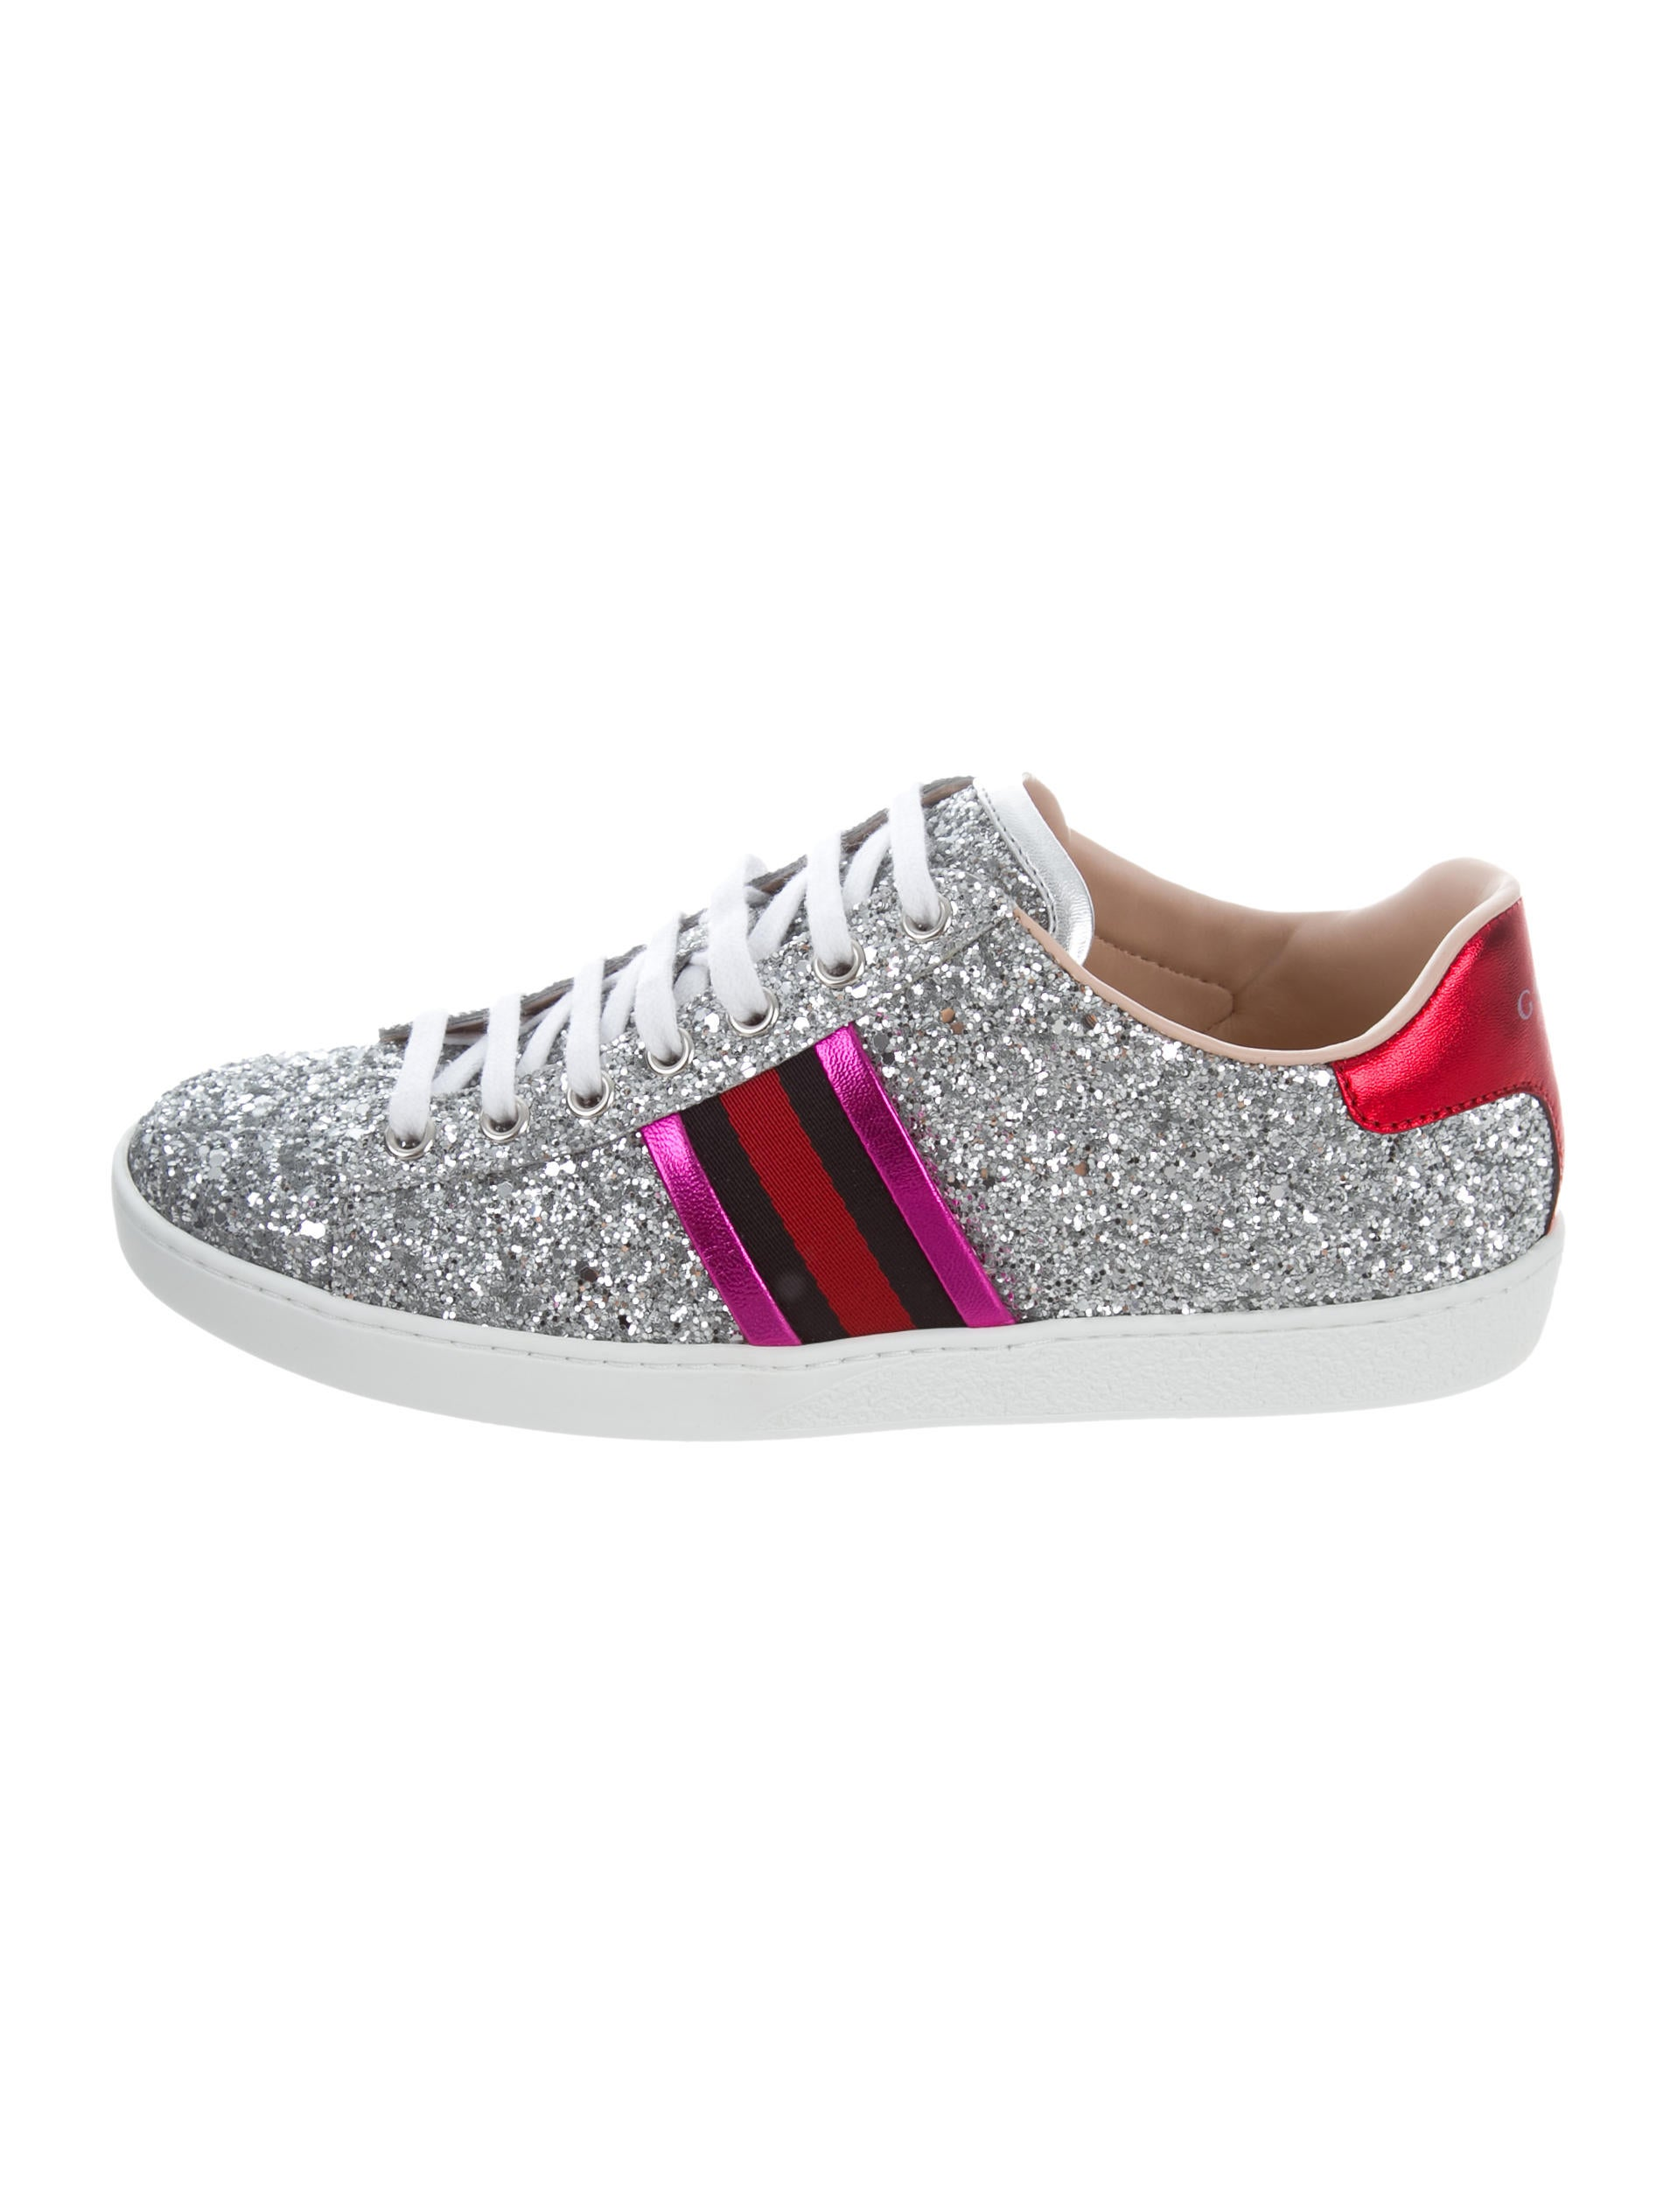 Gucci Glitter Web Sneakers w/ Tags - Shoes - GUC167234 | The RealReal